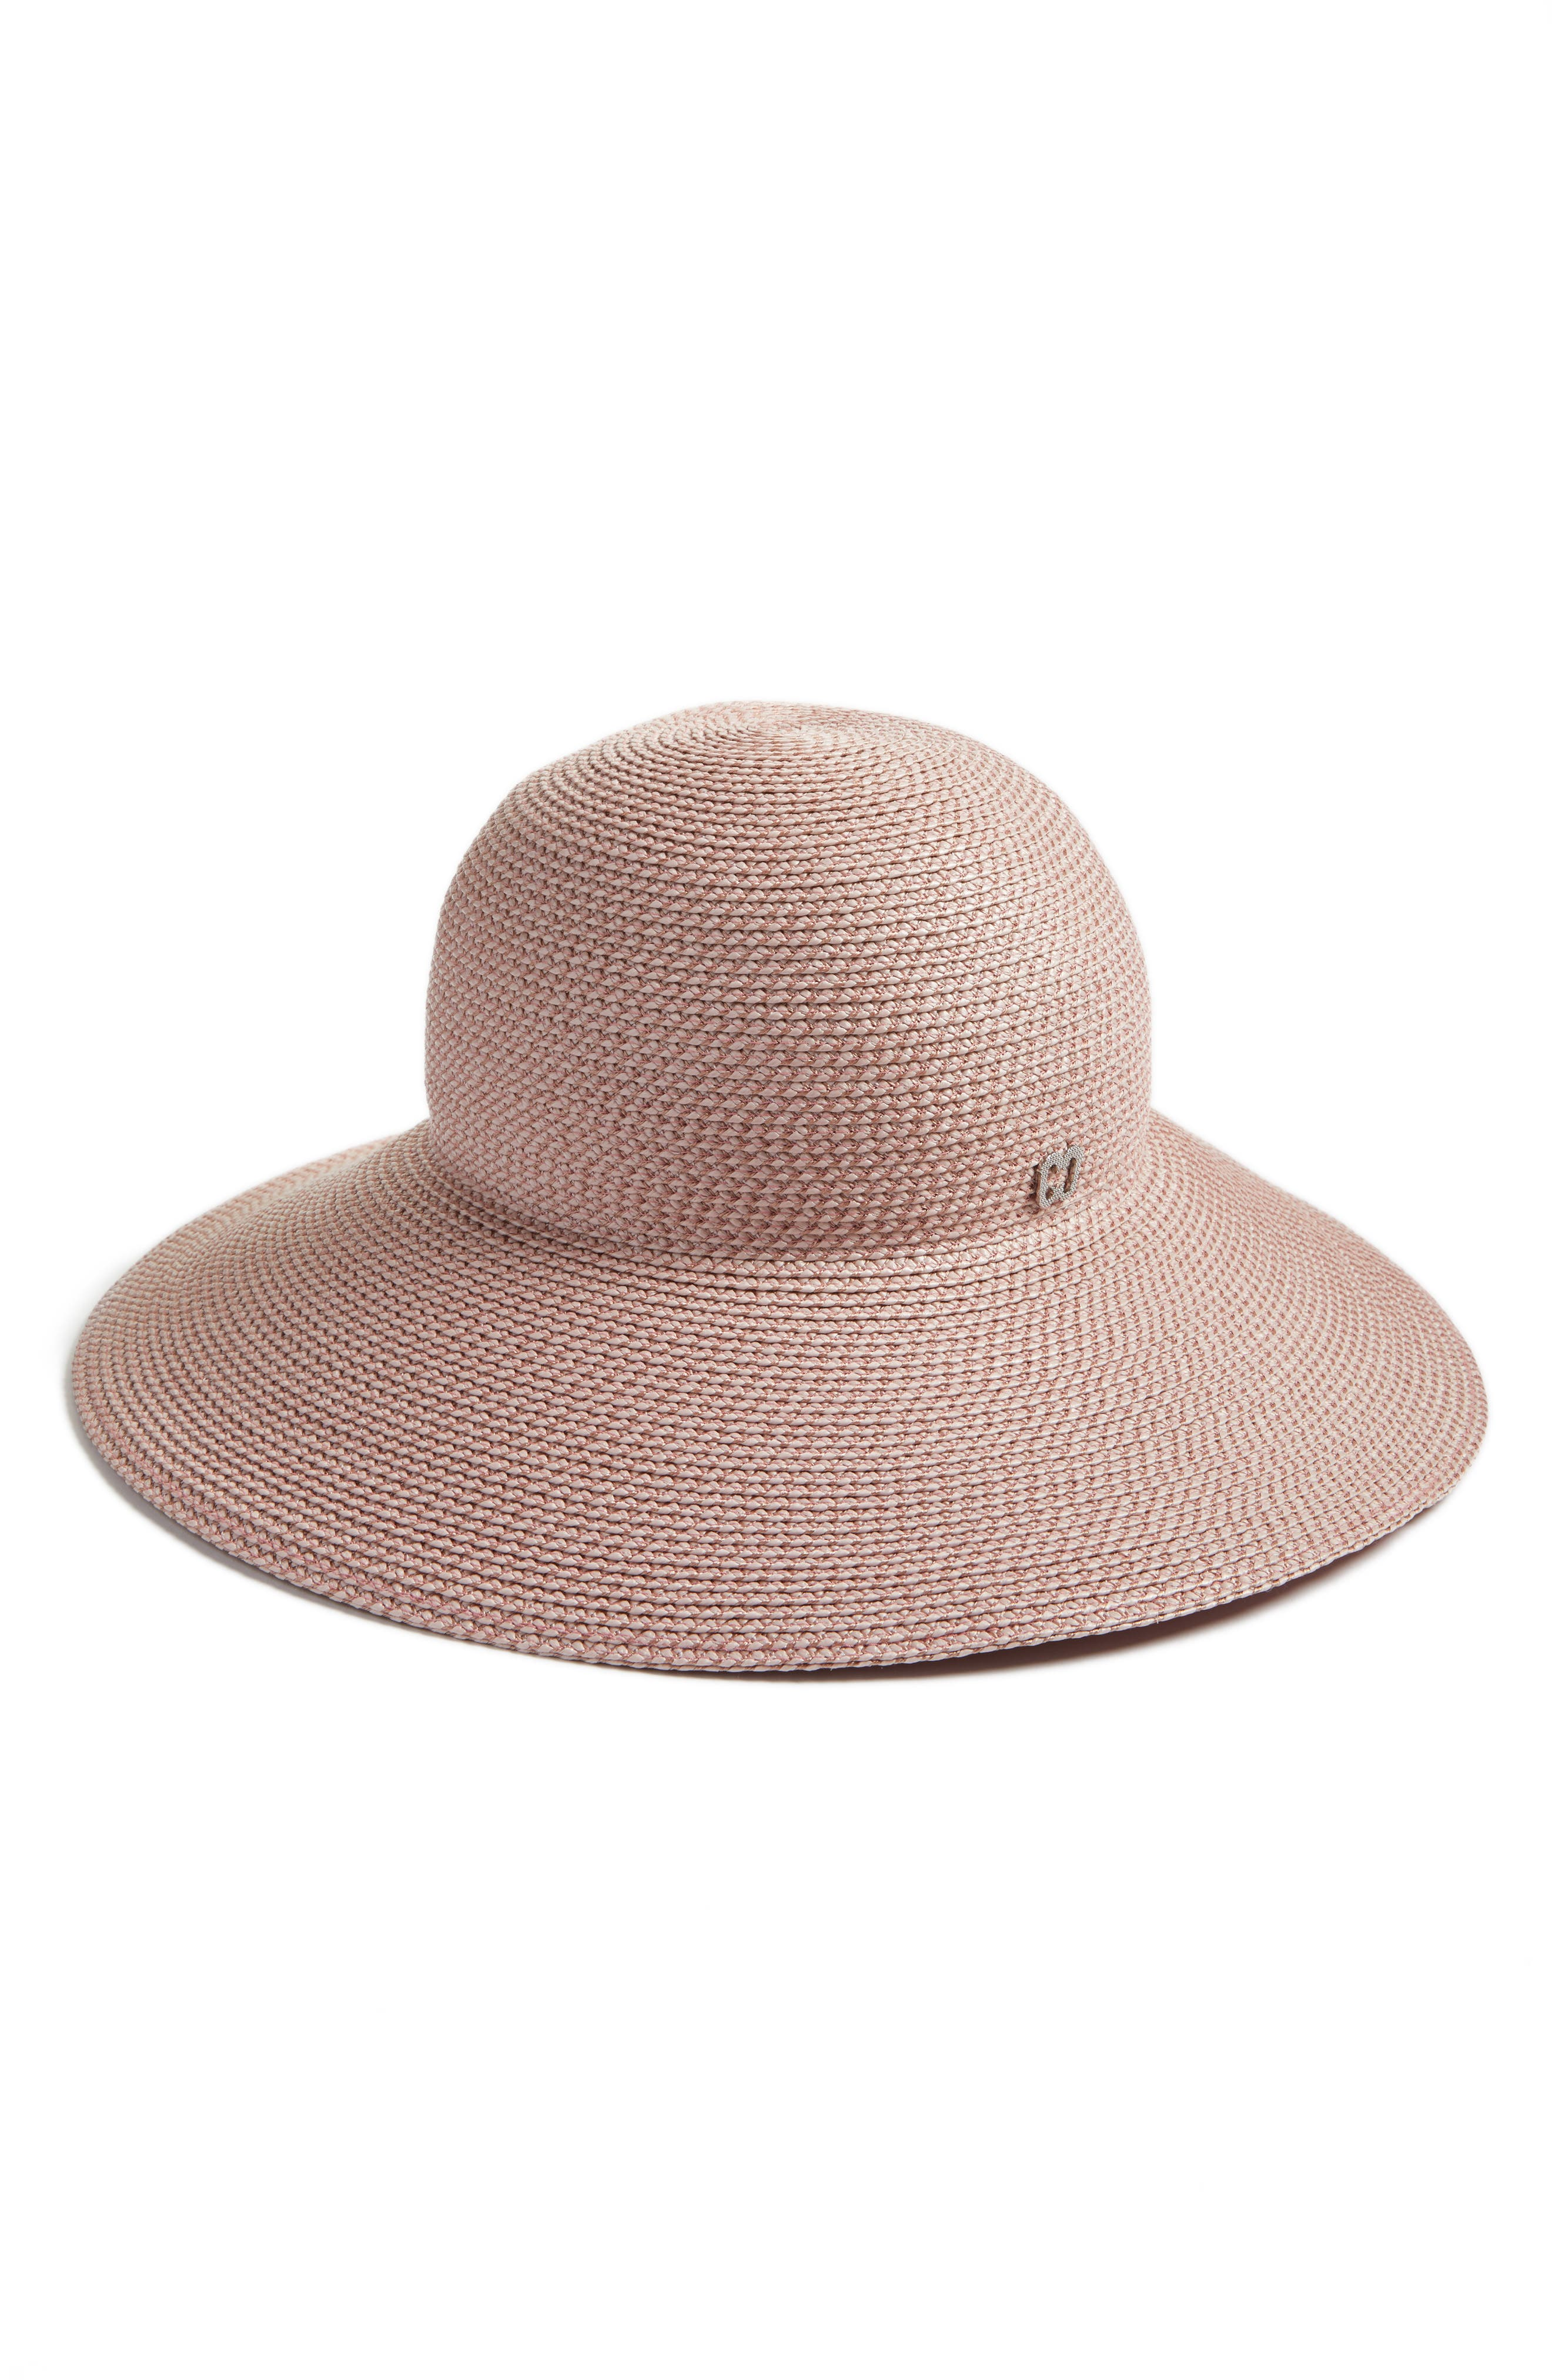 'Hampton' Straw Sun Hat,                             Alternate thumbnail 2, color,                             BLUSH